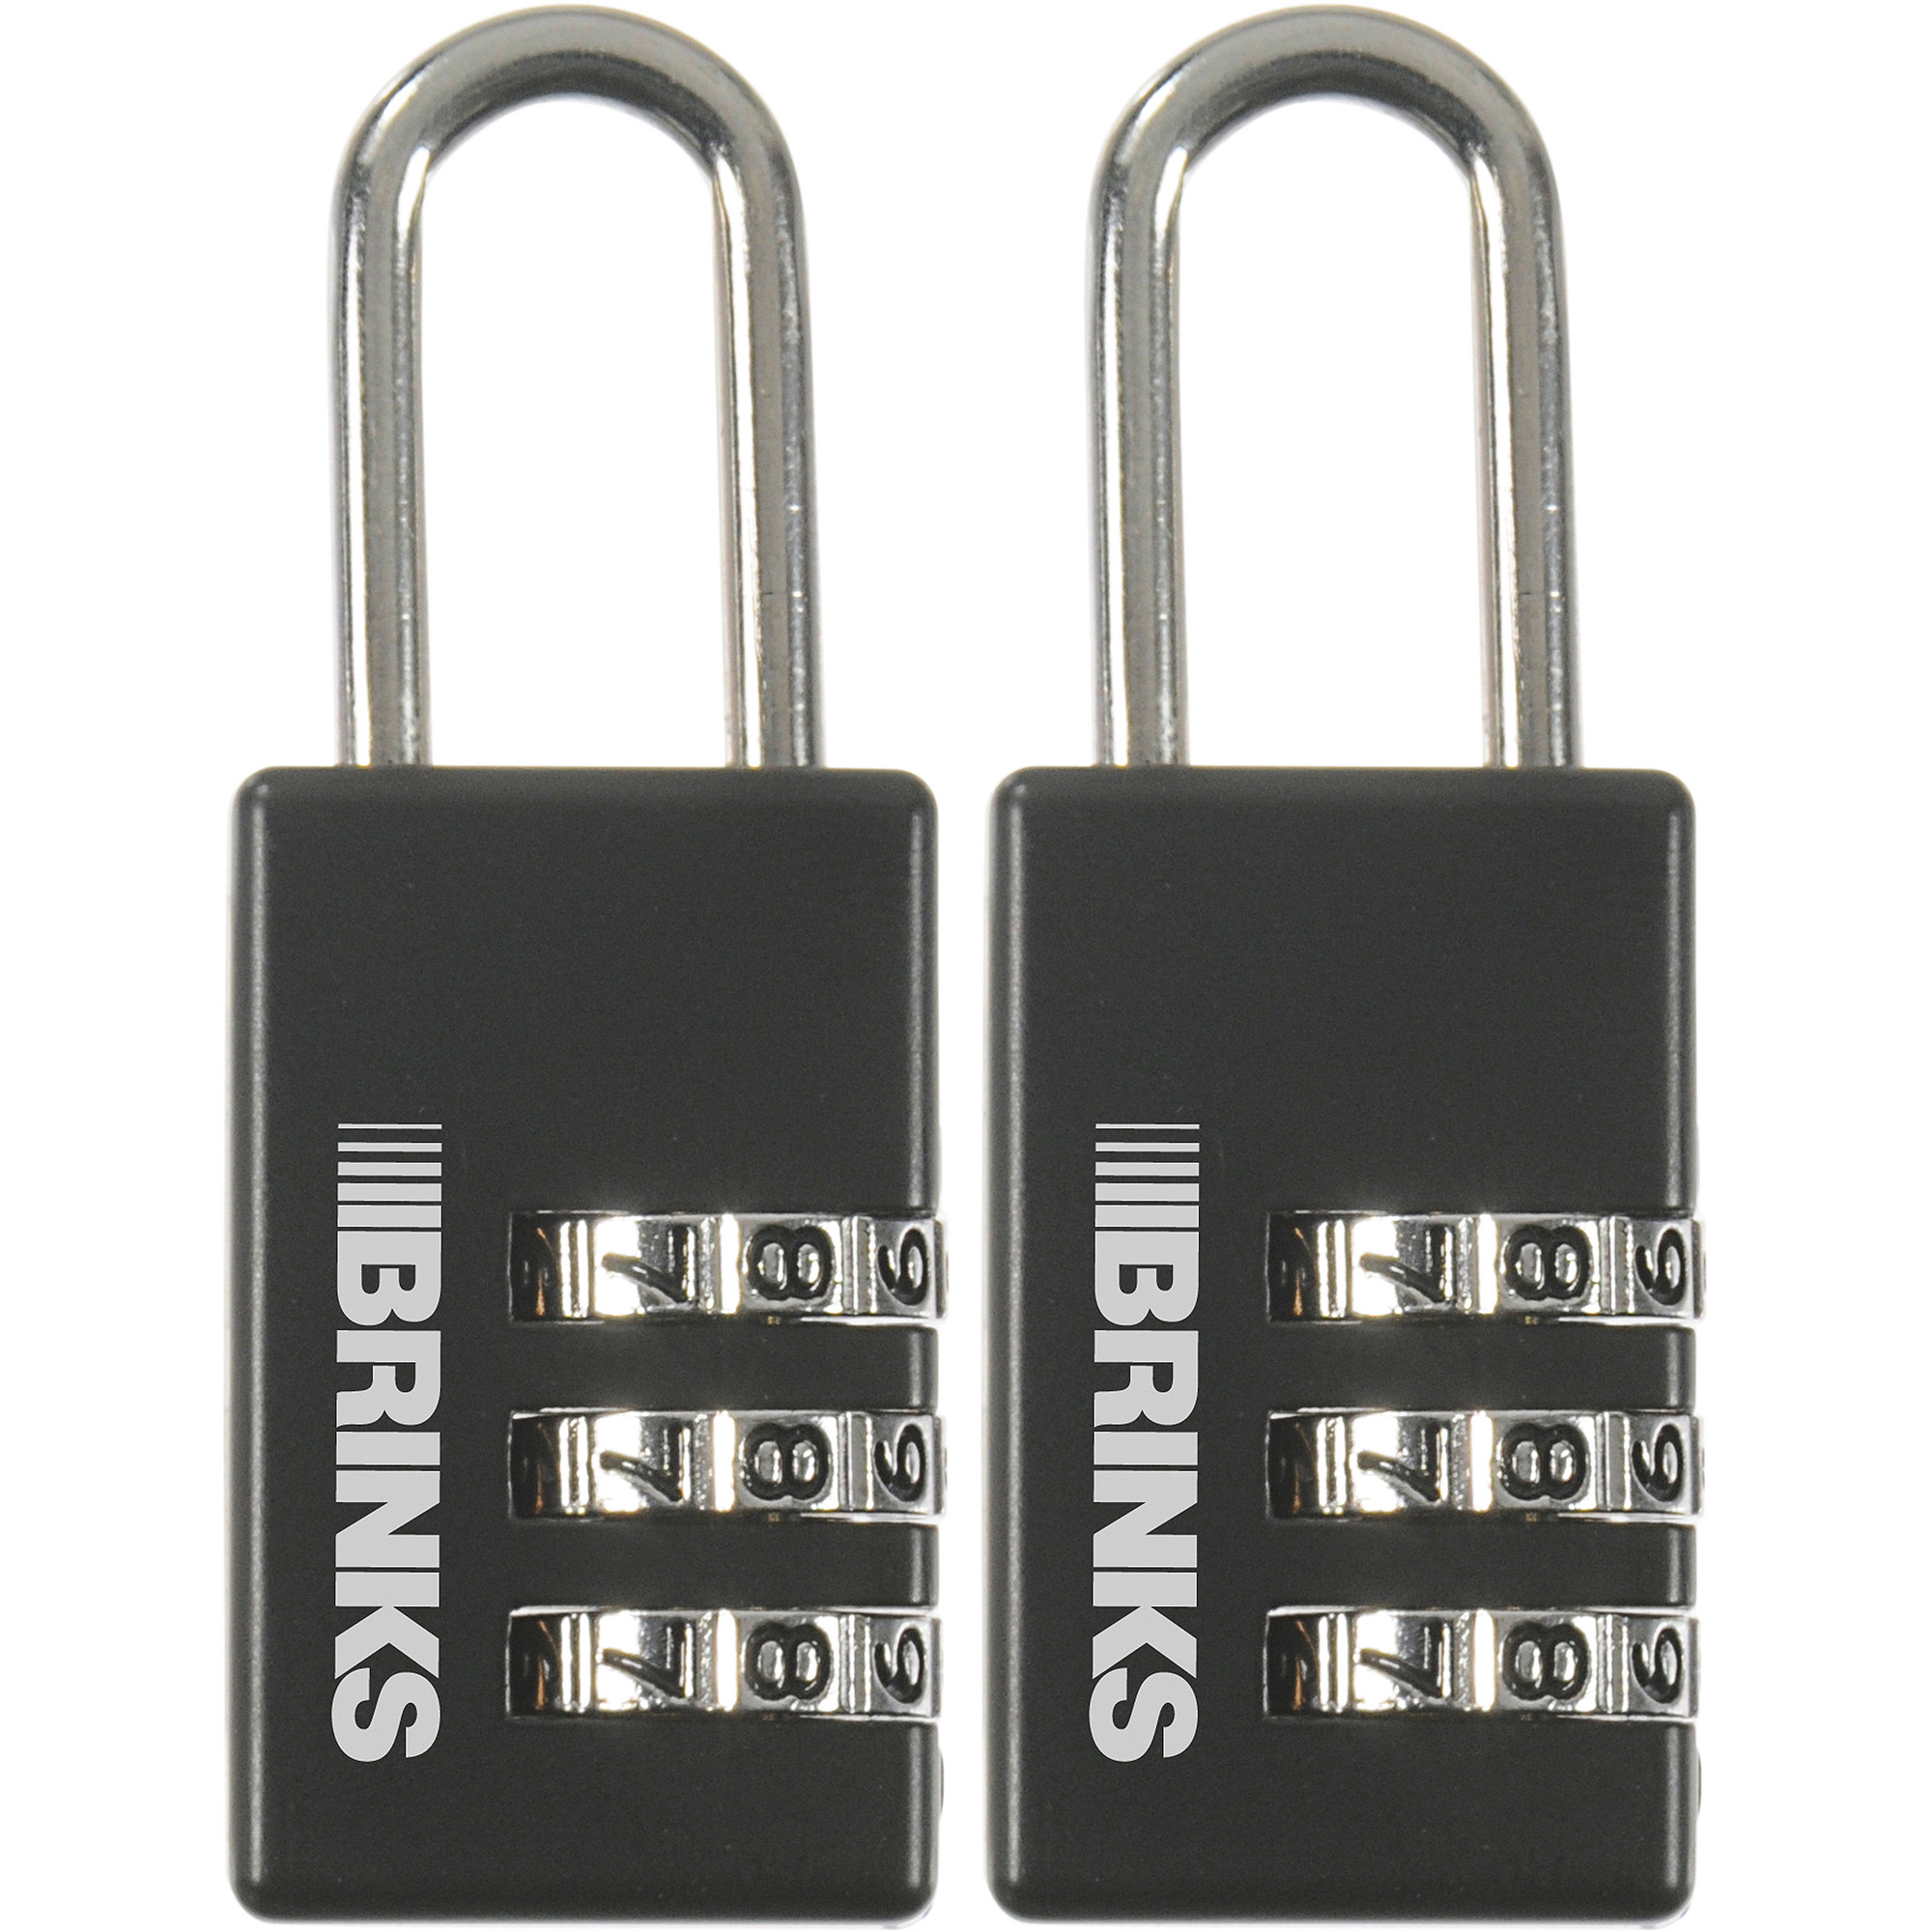 Brinks 22mm Resettable Combination Sport Padlock, 2-Pack